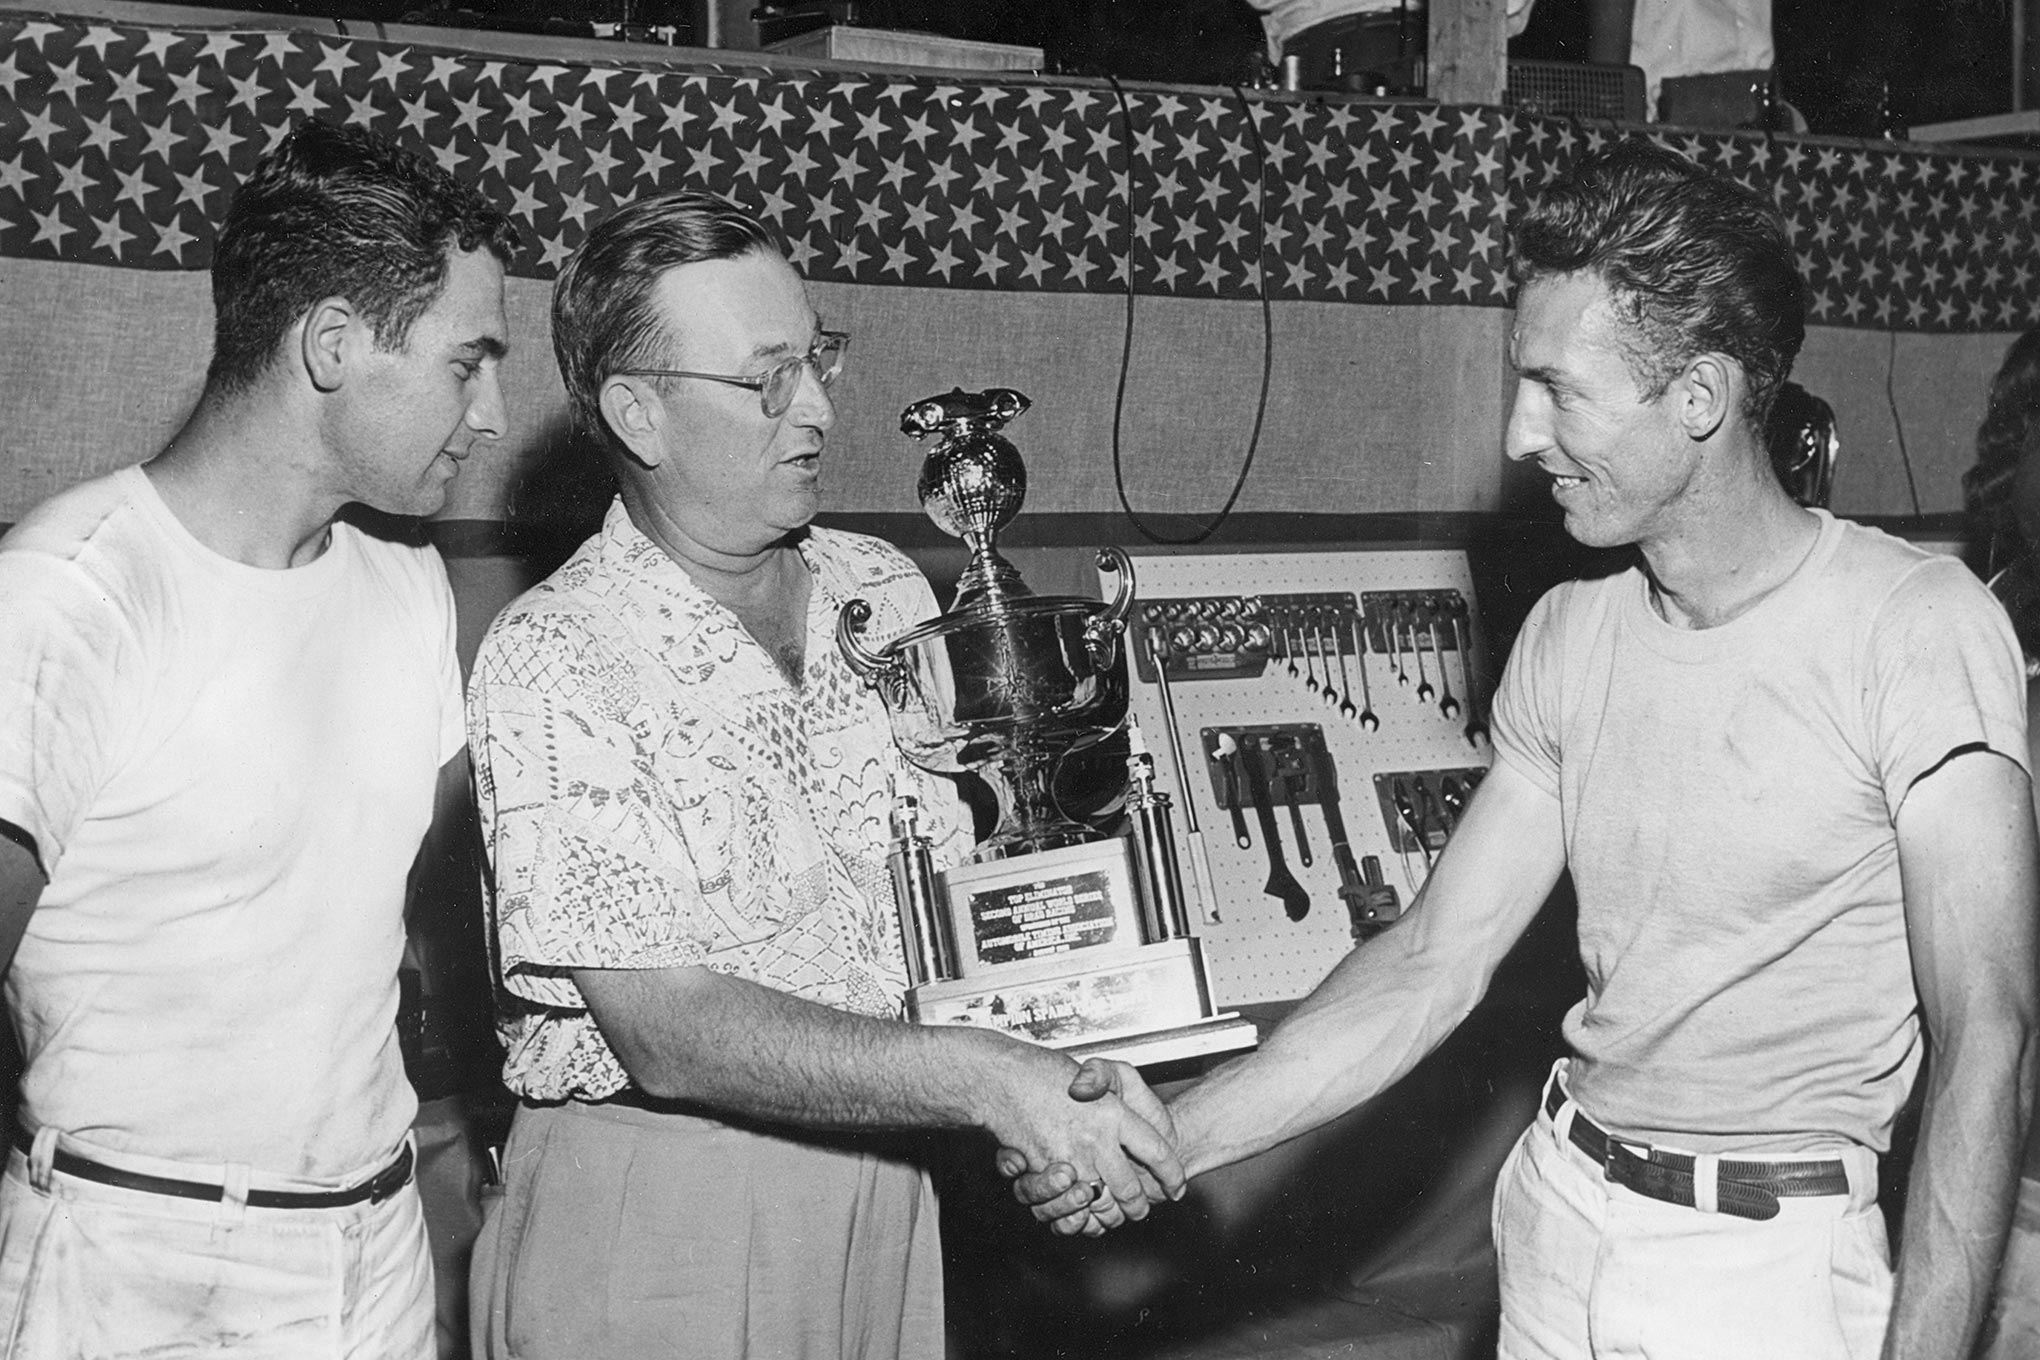 Scotty and Goldberg accepting the Top Eliminator trophy from Dick McGeorge at Lawrenceville.